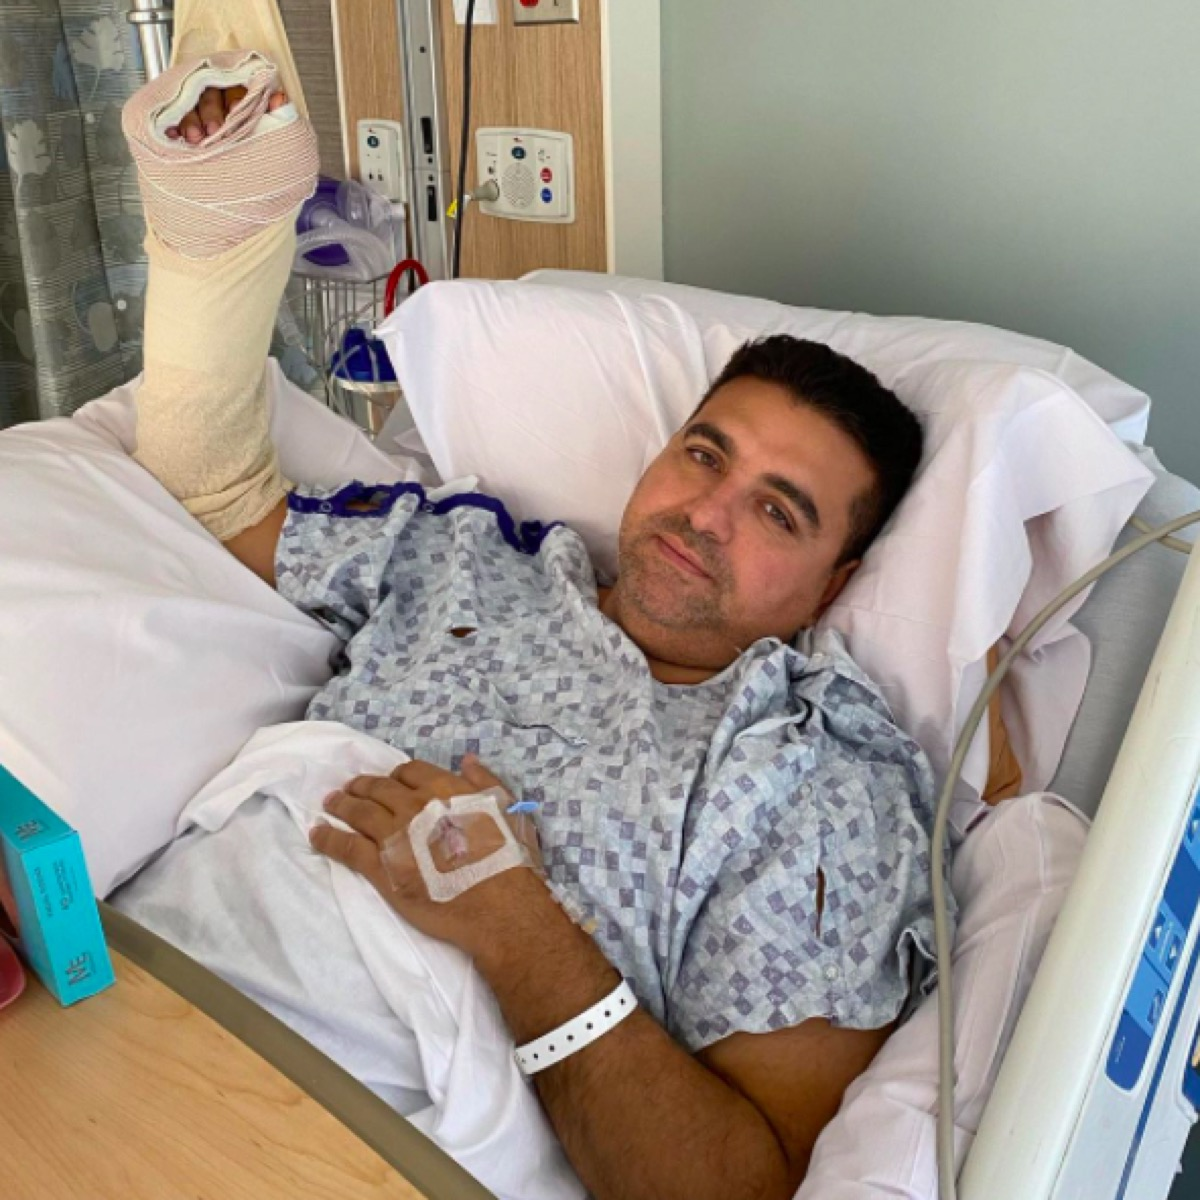 Cake Boss in the hospital for hand injury